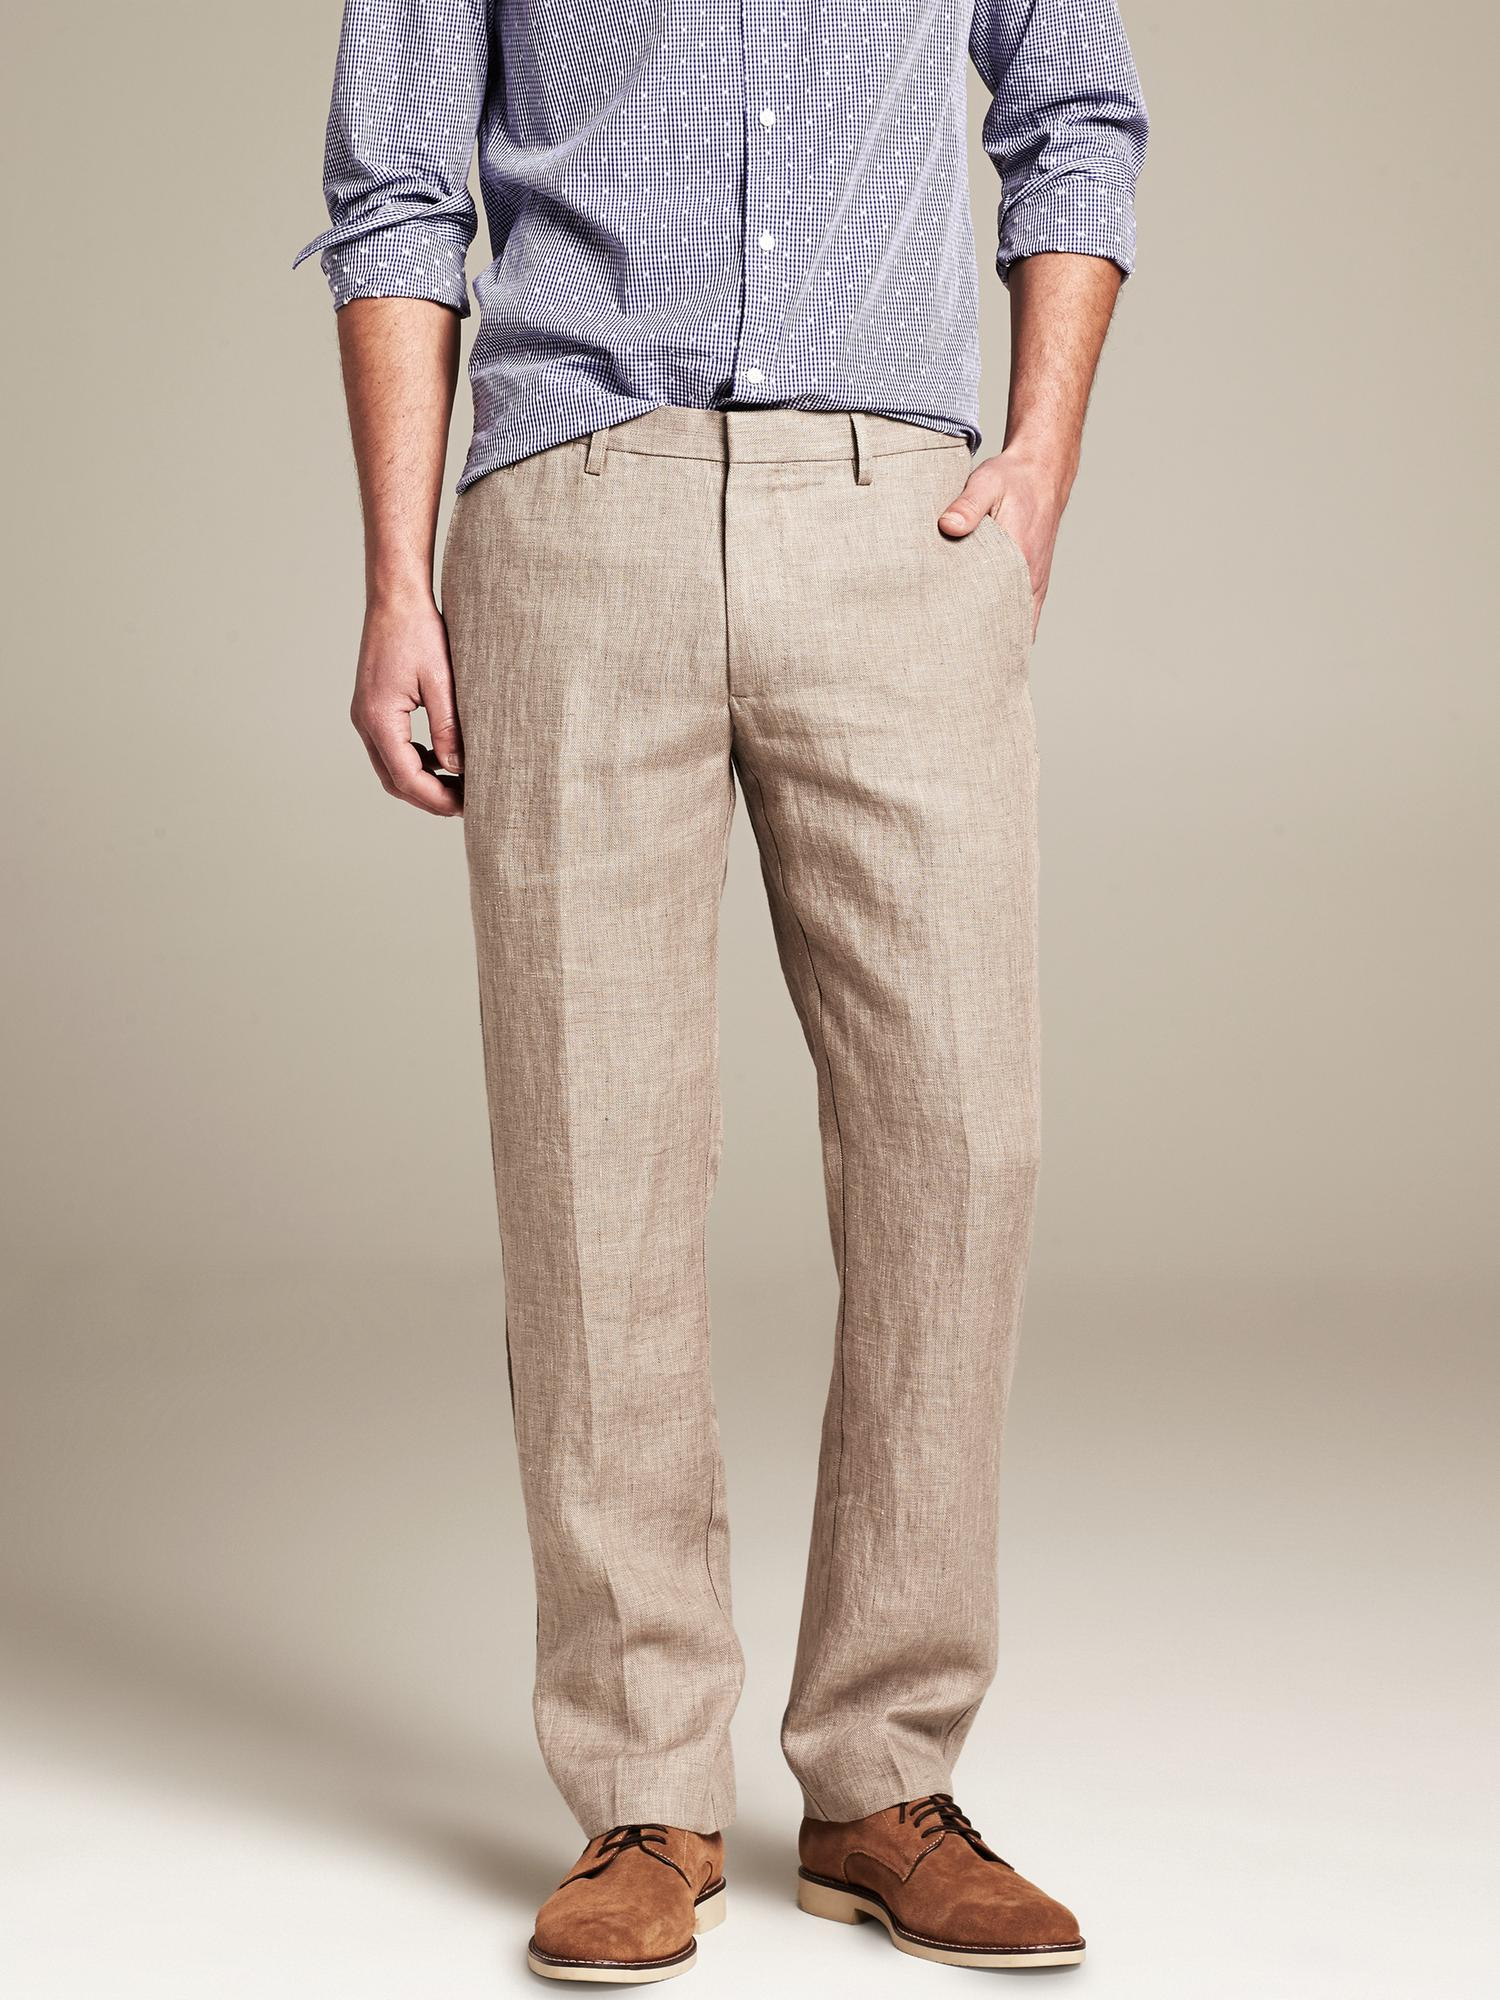 Men's Khaki Pants. Enhance your everyday look with men's khakis from Kohl's. Men's khaki pants are an ideal for work or the weekend! We have all the brands you want, including Men's Dockers Khaki lindsayclewisirah.gq also have all the fits to help you stay on trend, like men's slim khaki lindsayclewisirah.gq shop our other khaki essentials, like men's pleated khaki pants, that will never go out of style.